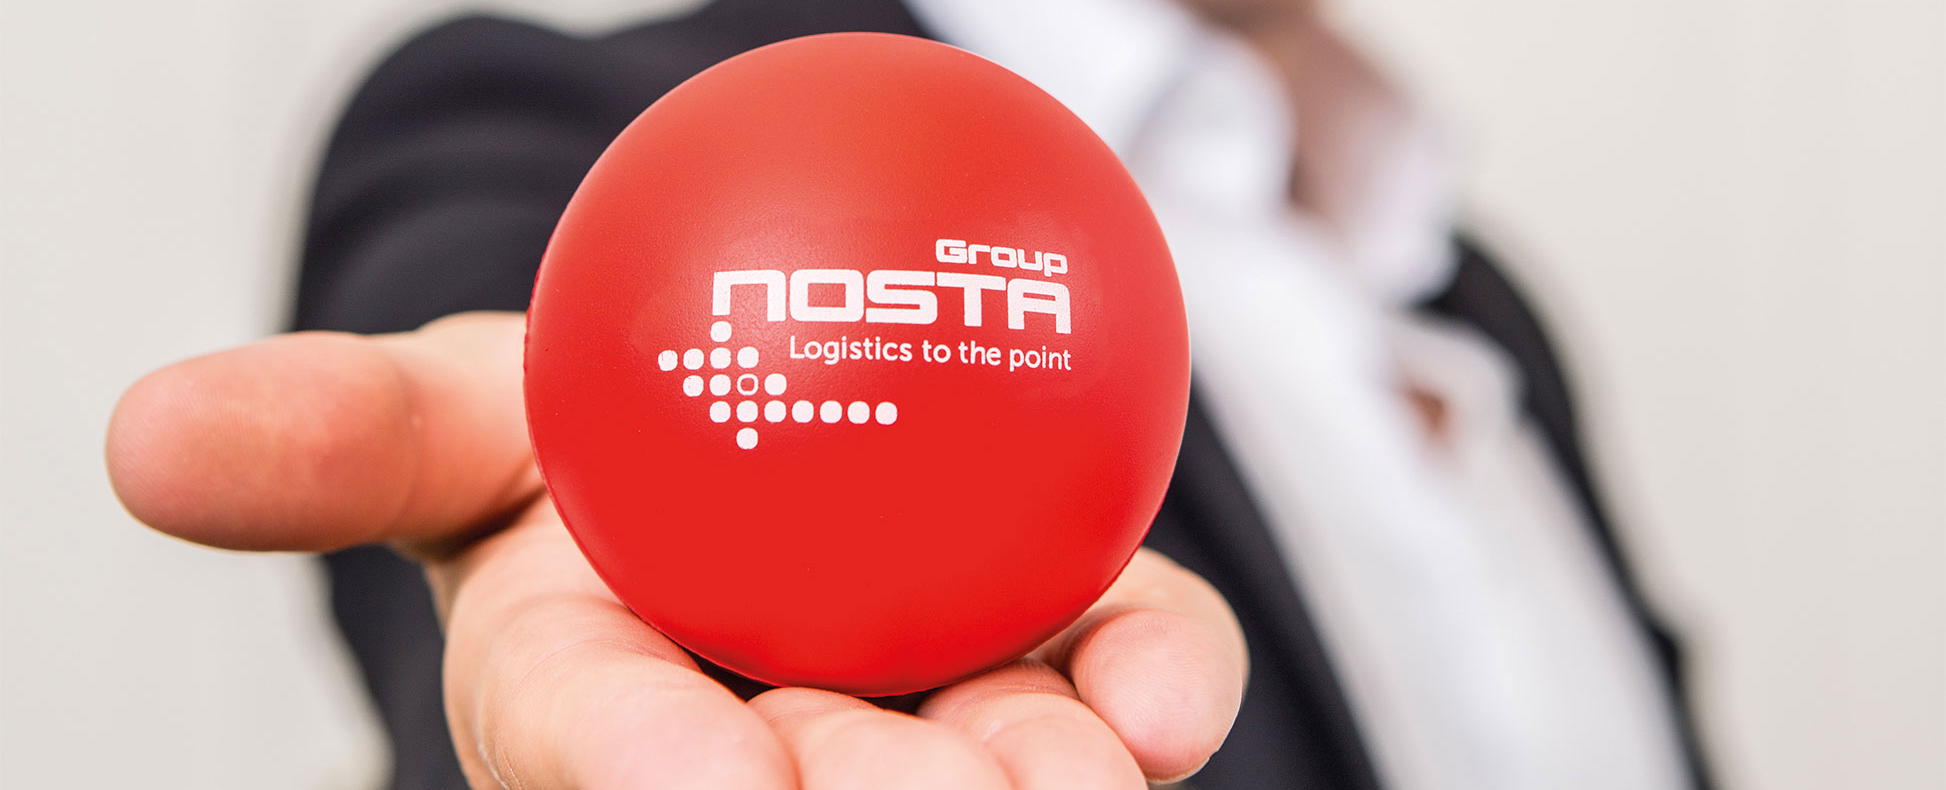 NOSTA Group mission statement with red NOSTA ball